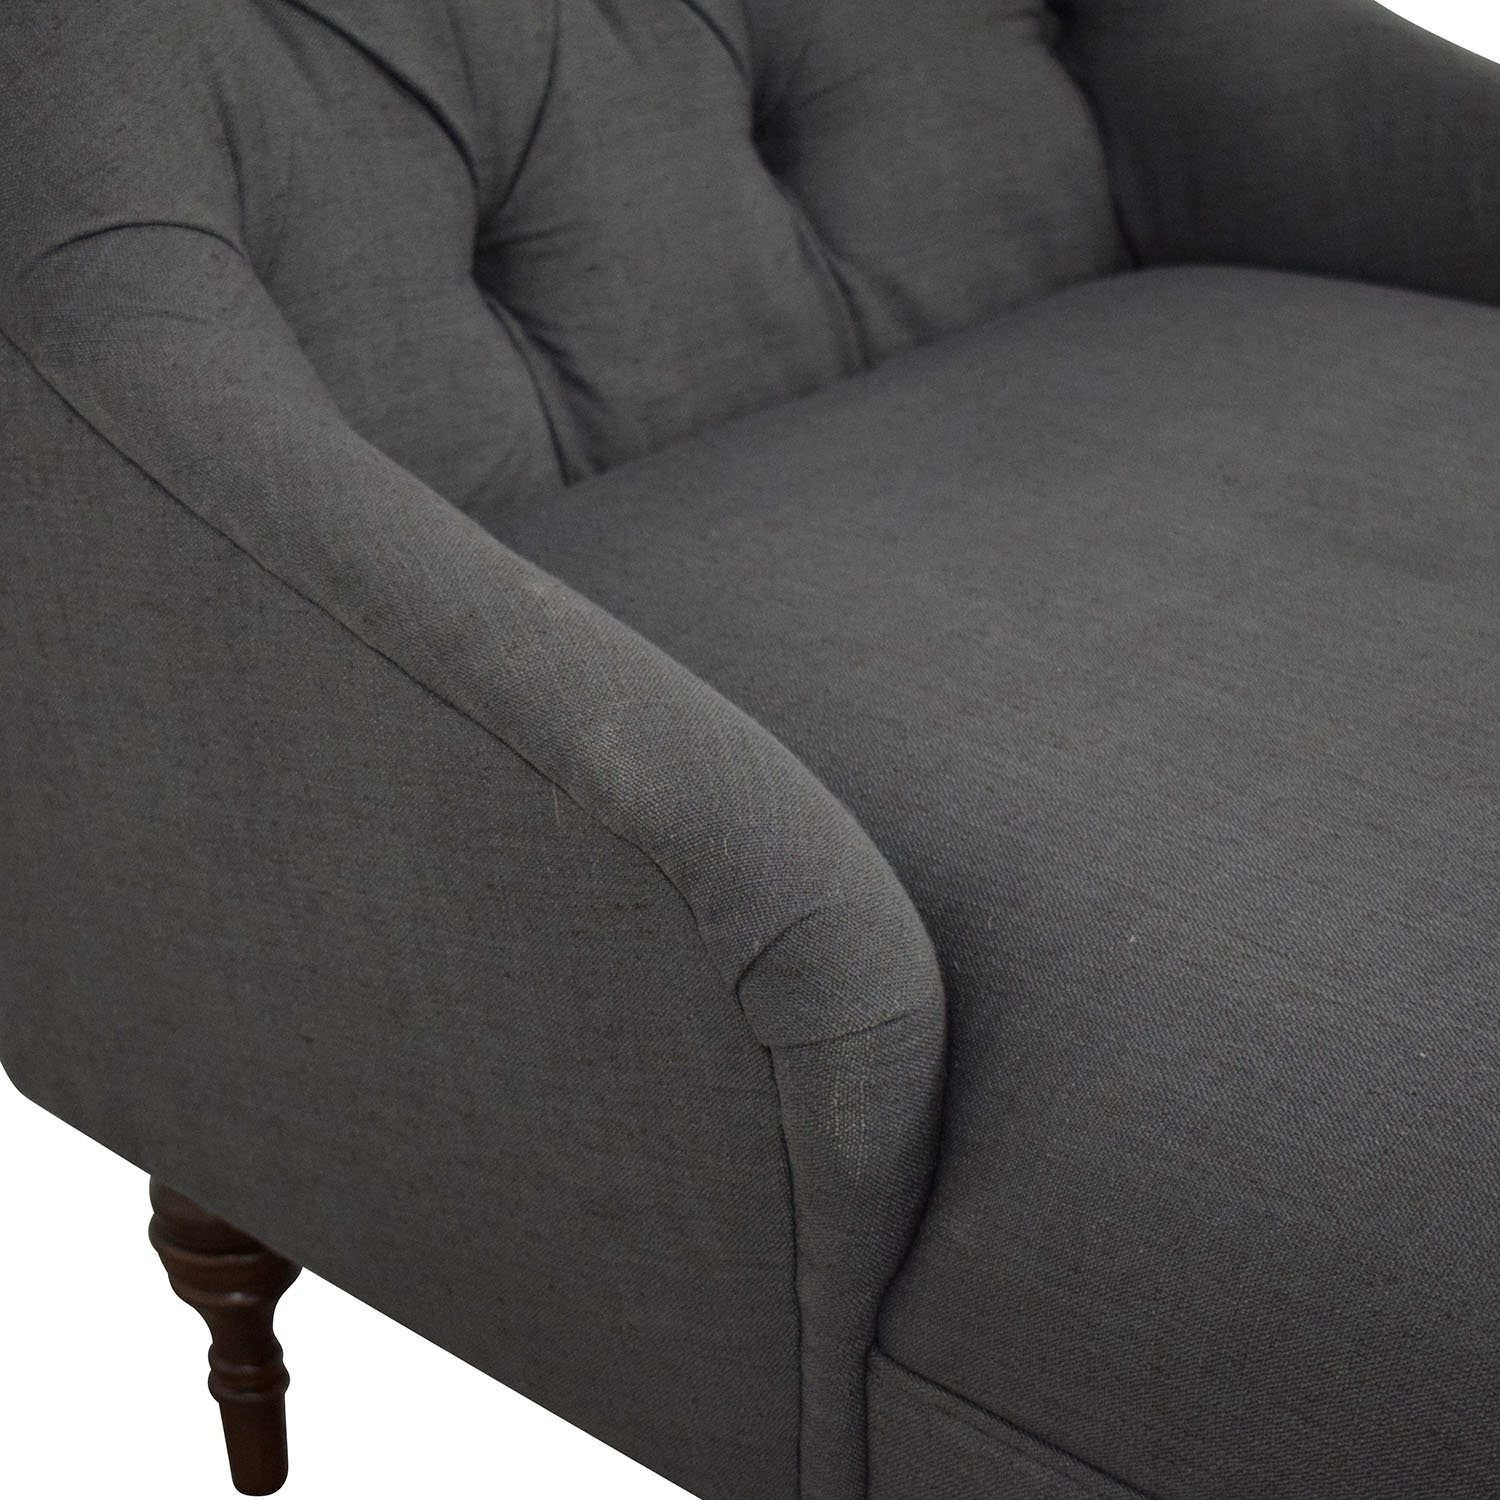 One Kings Lane Skyline Furniture Chaise Lounge coupon